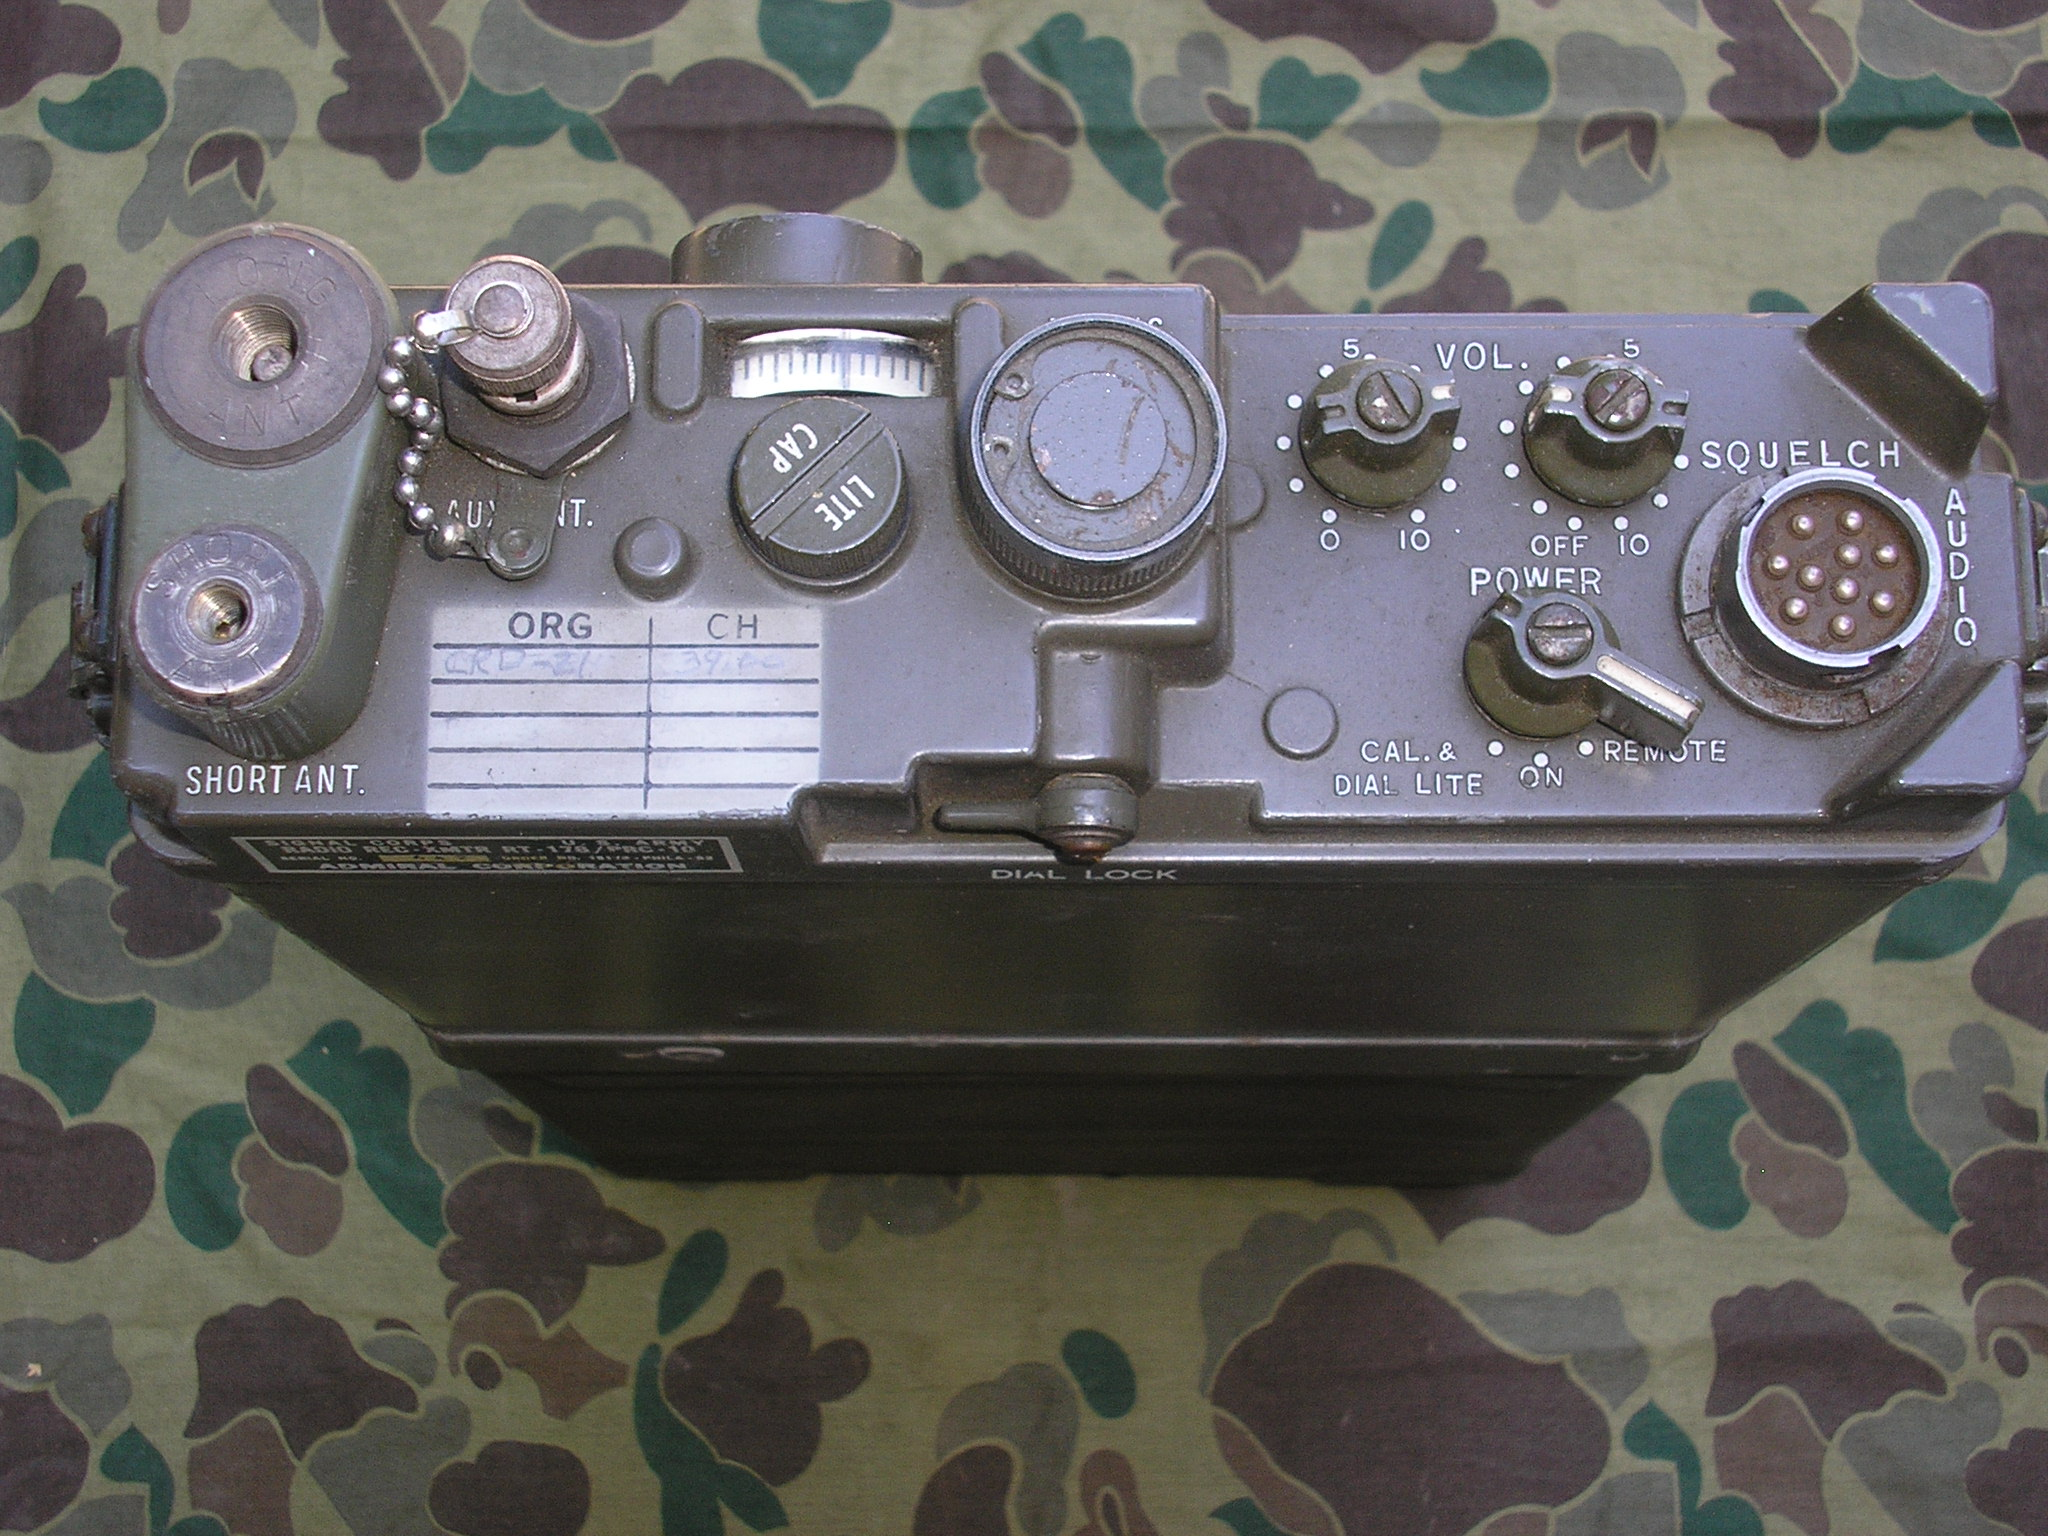 AN/PRC-10 Infantry Radio